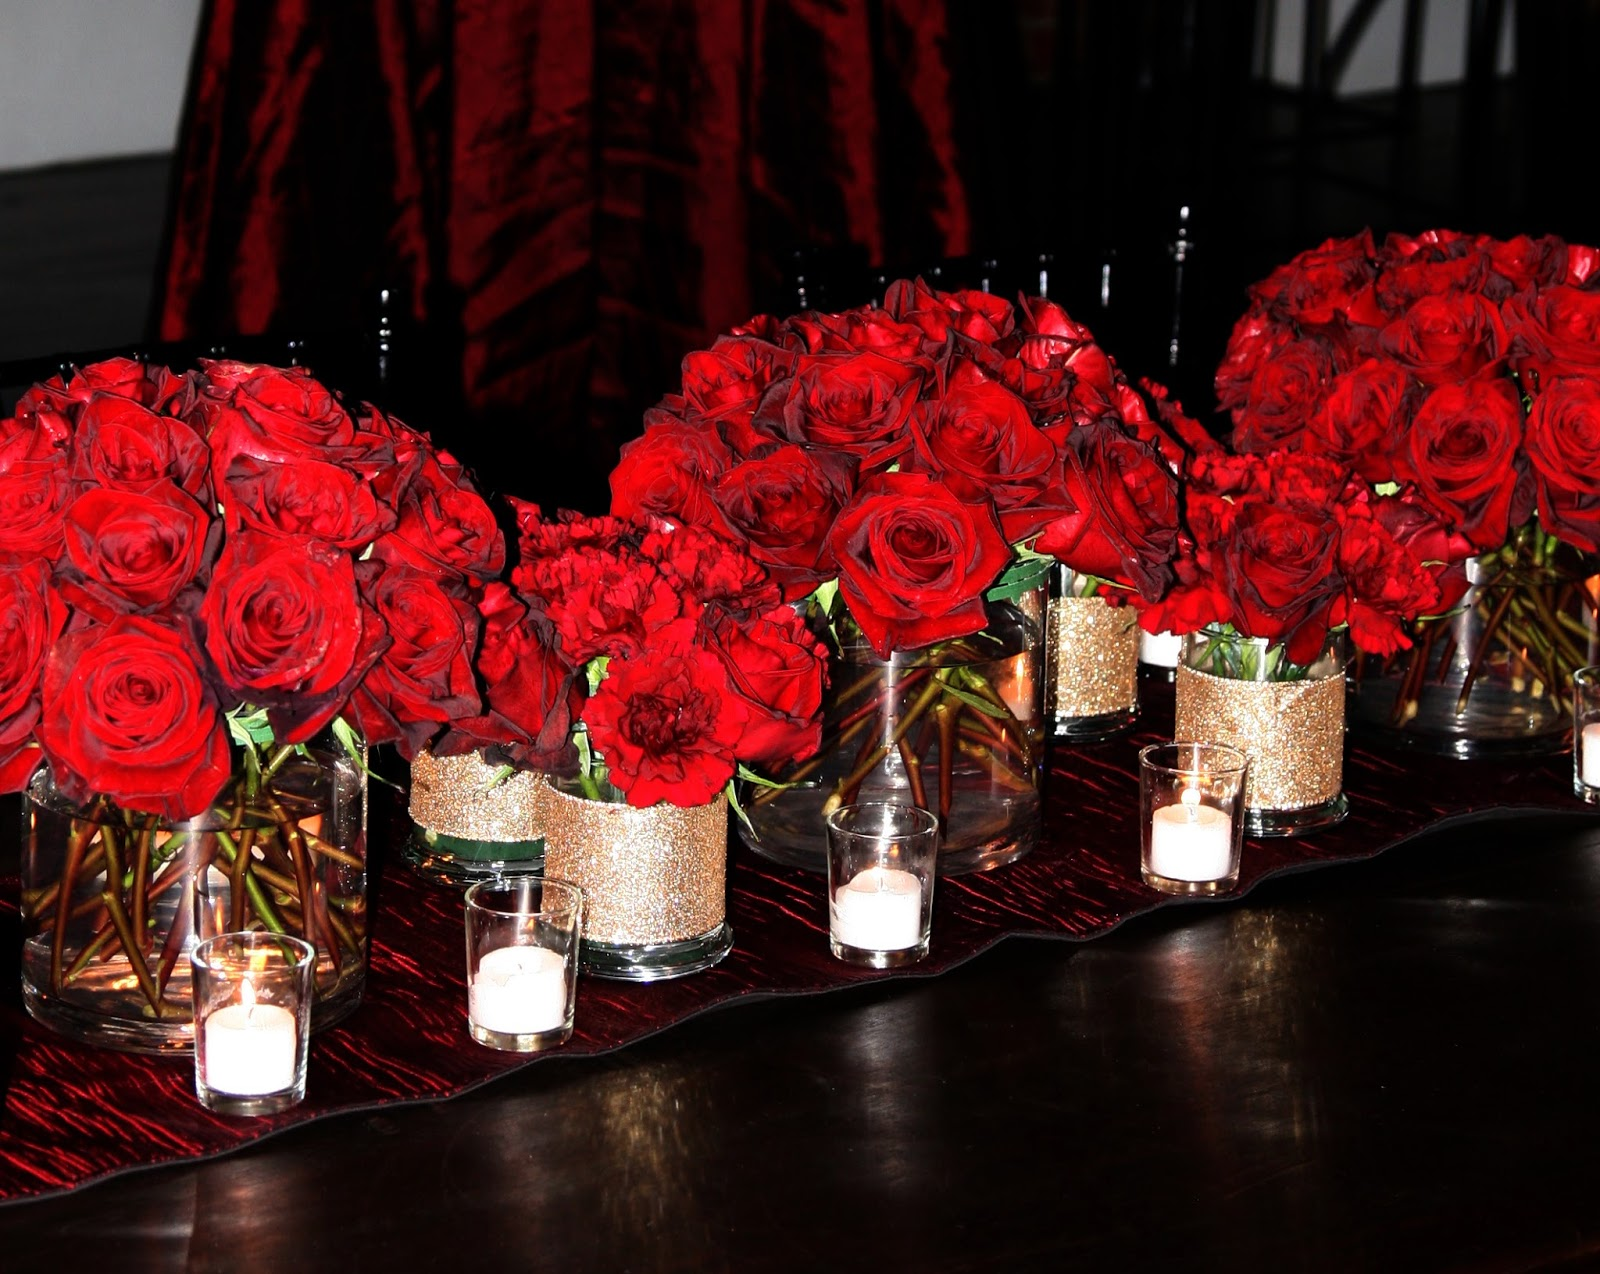 Candle lit winter wedding studio in bloom